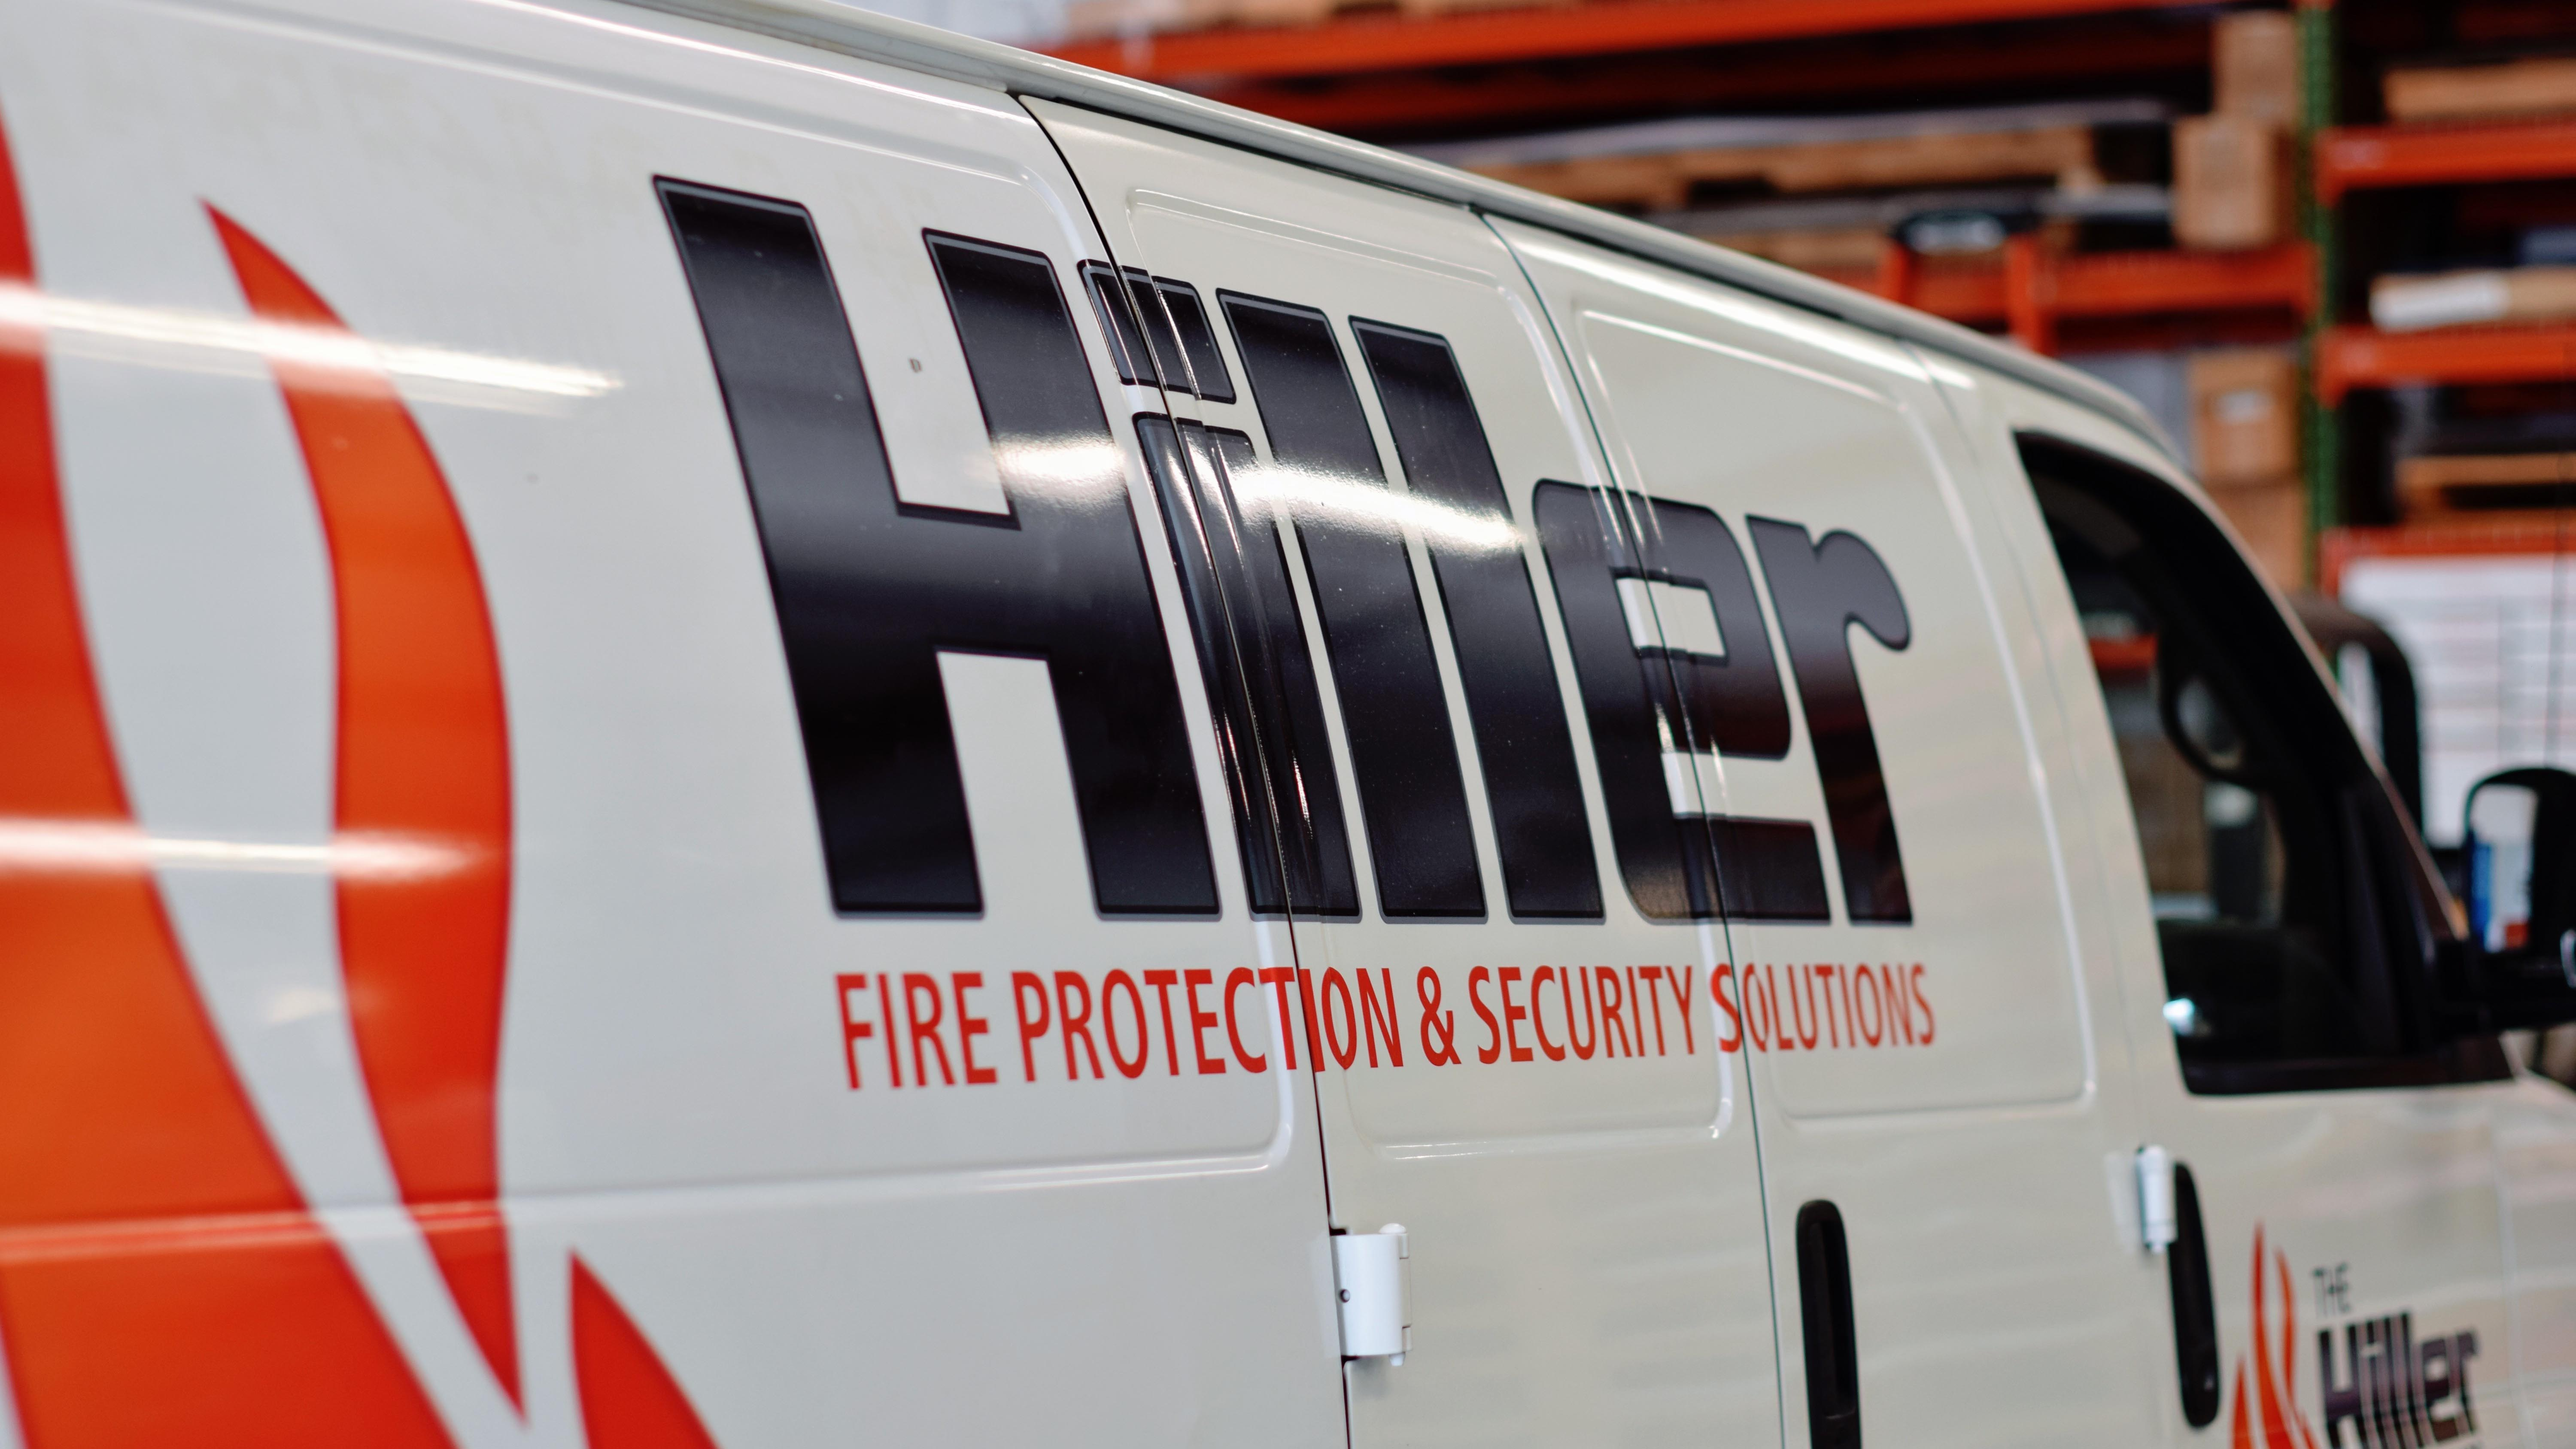 Fleet wraps on new Hiller vans - signgeek